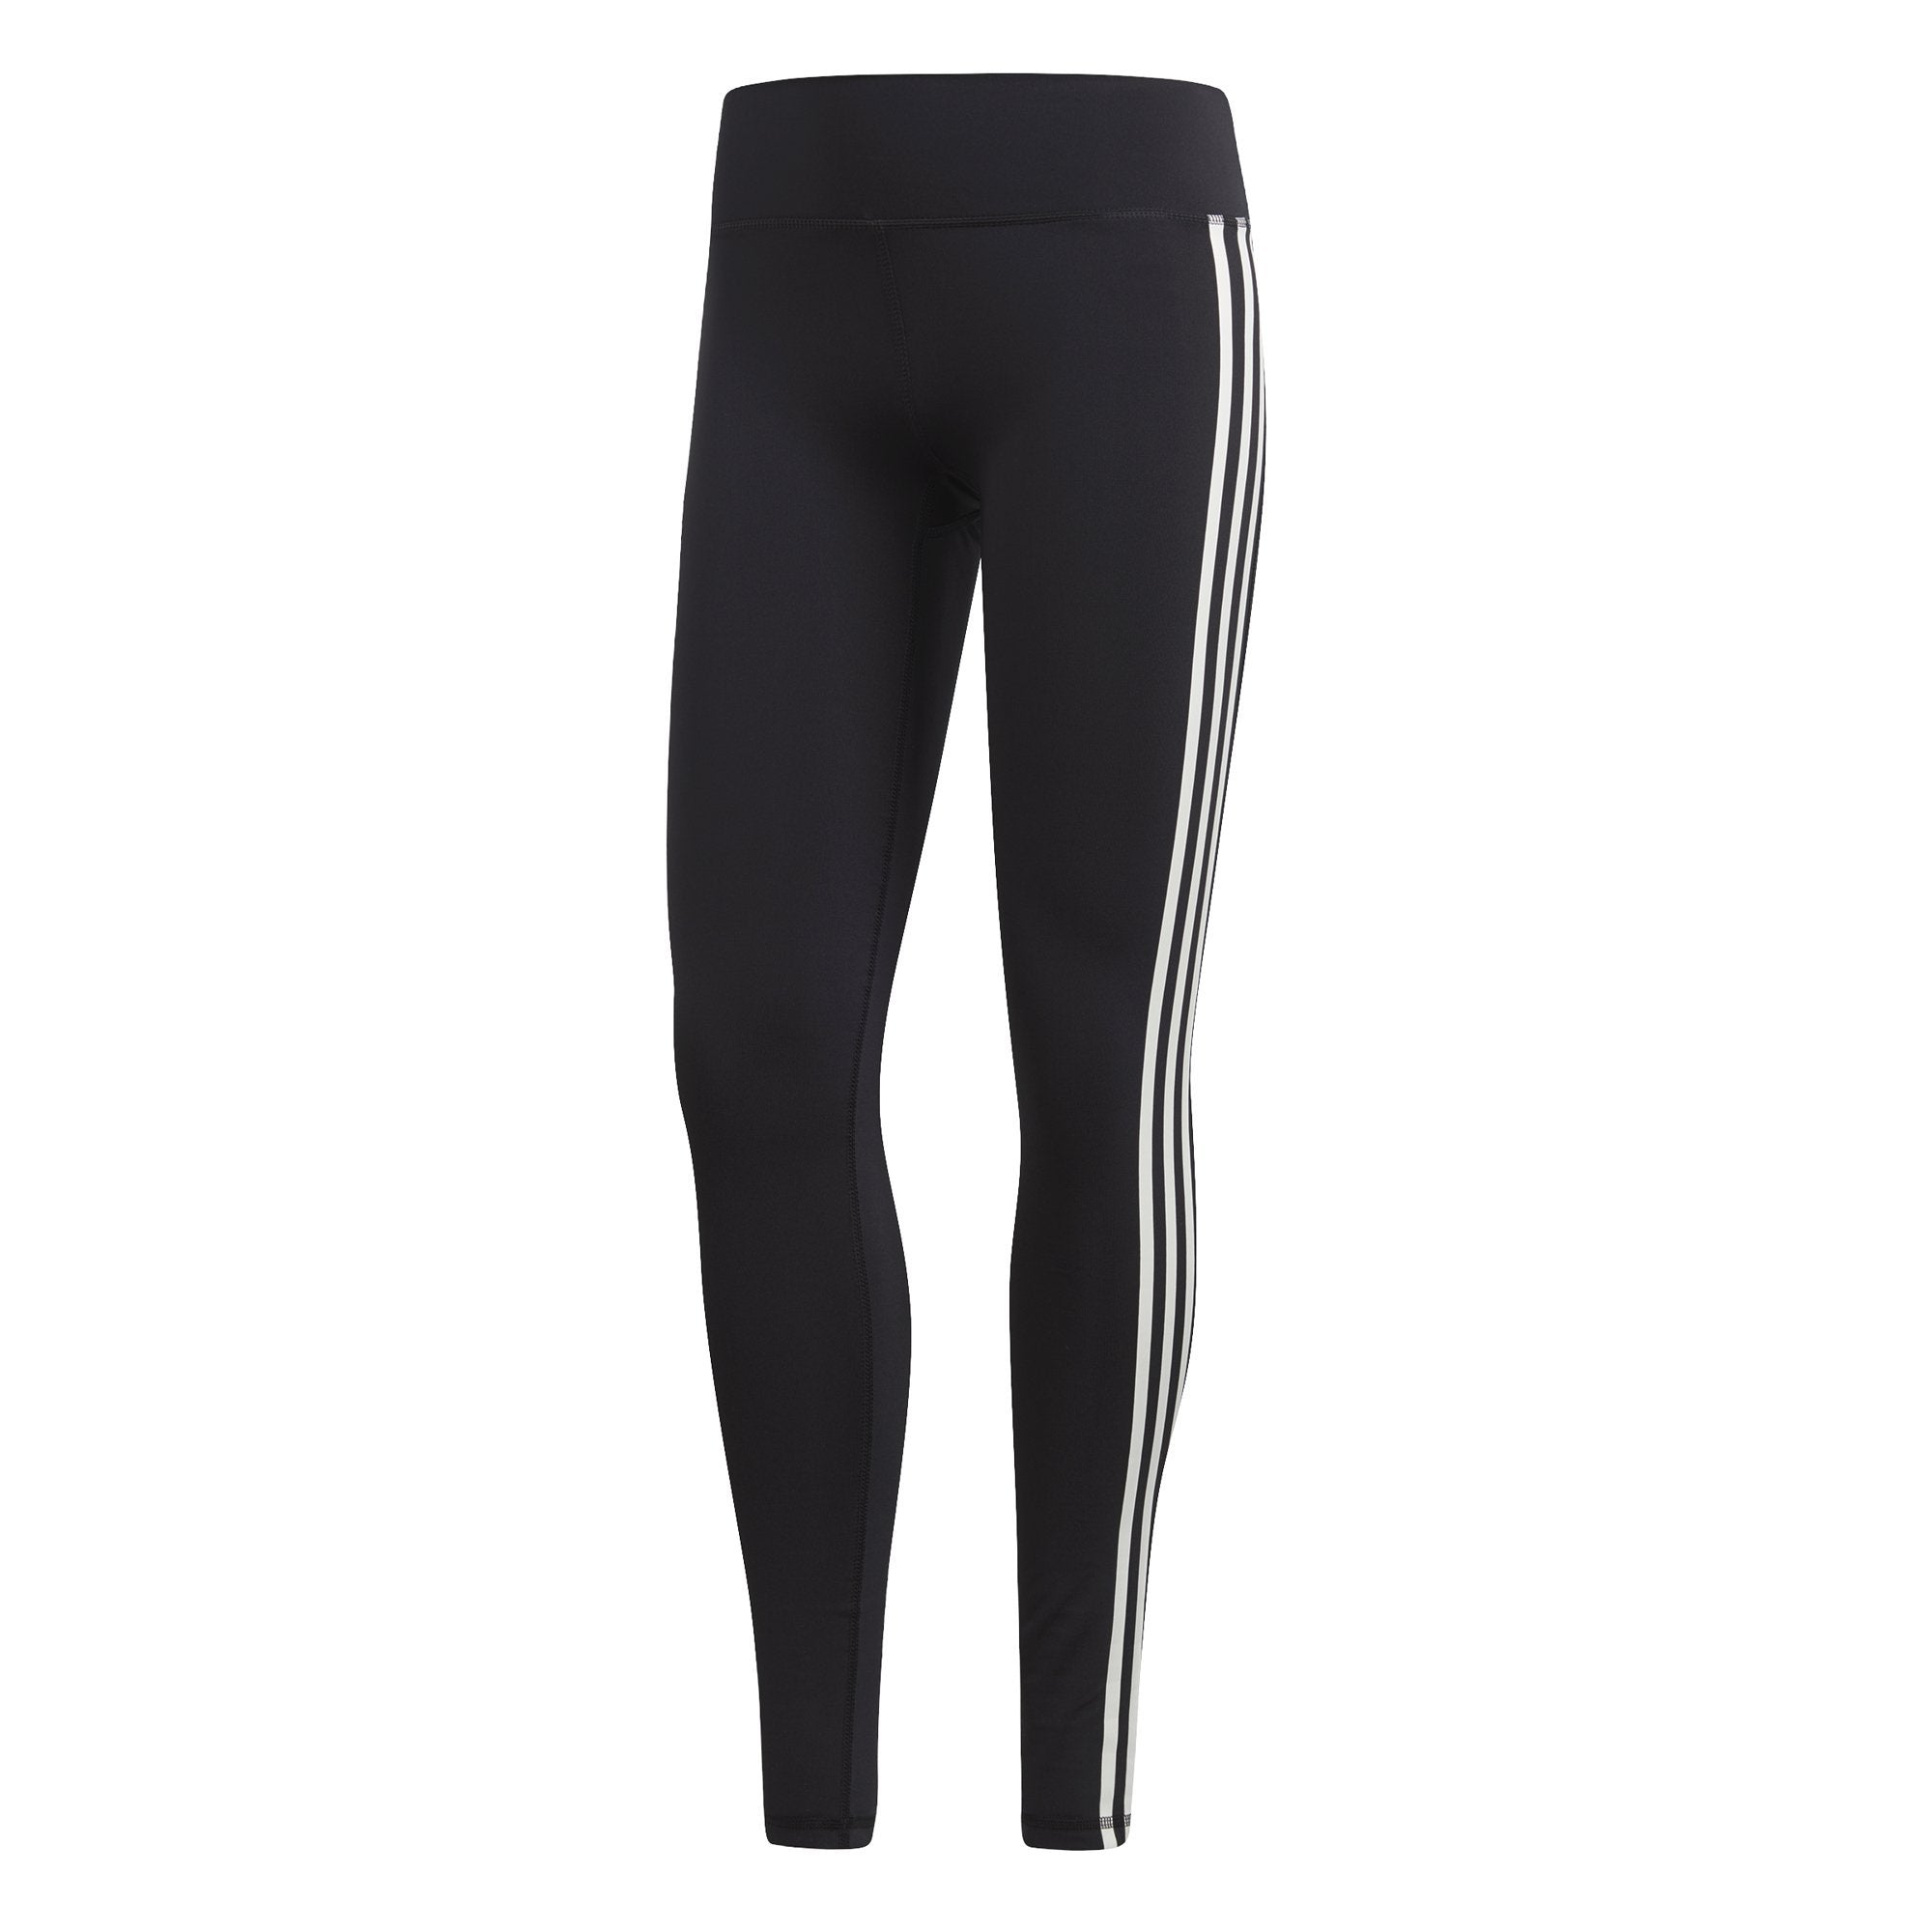 Adidas Womens Believe This 3-Stripes Tights - black SP-ApparelTights-Women Adidas